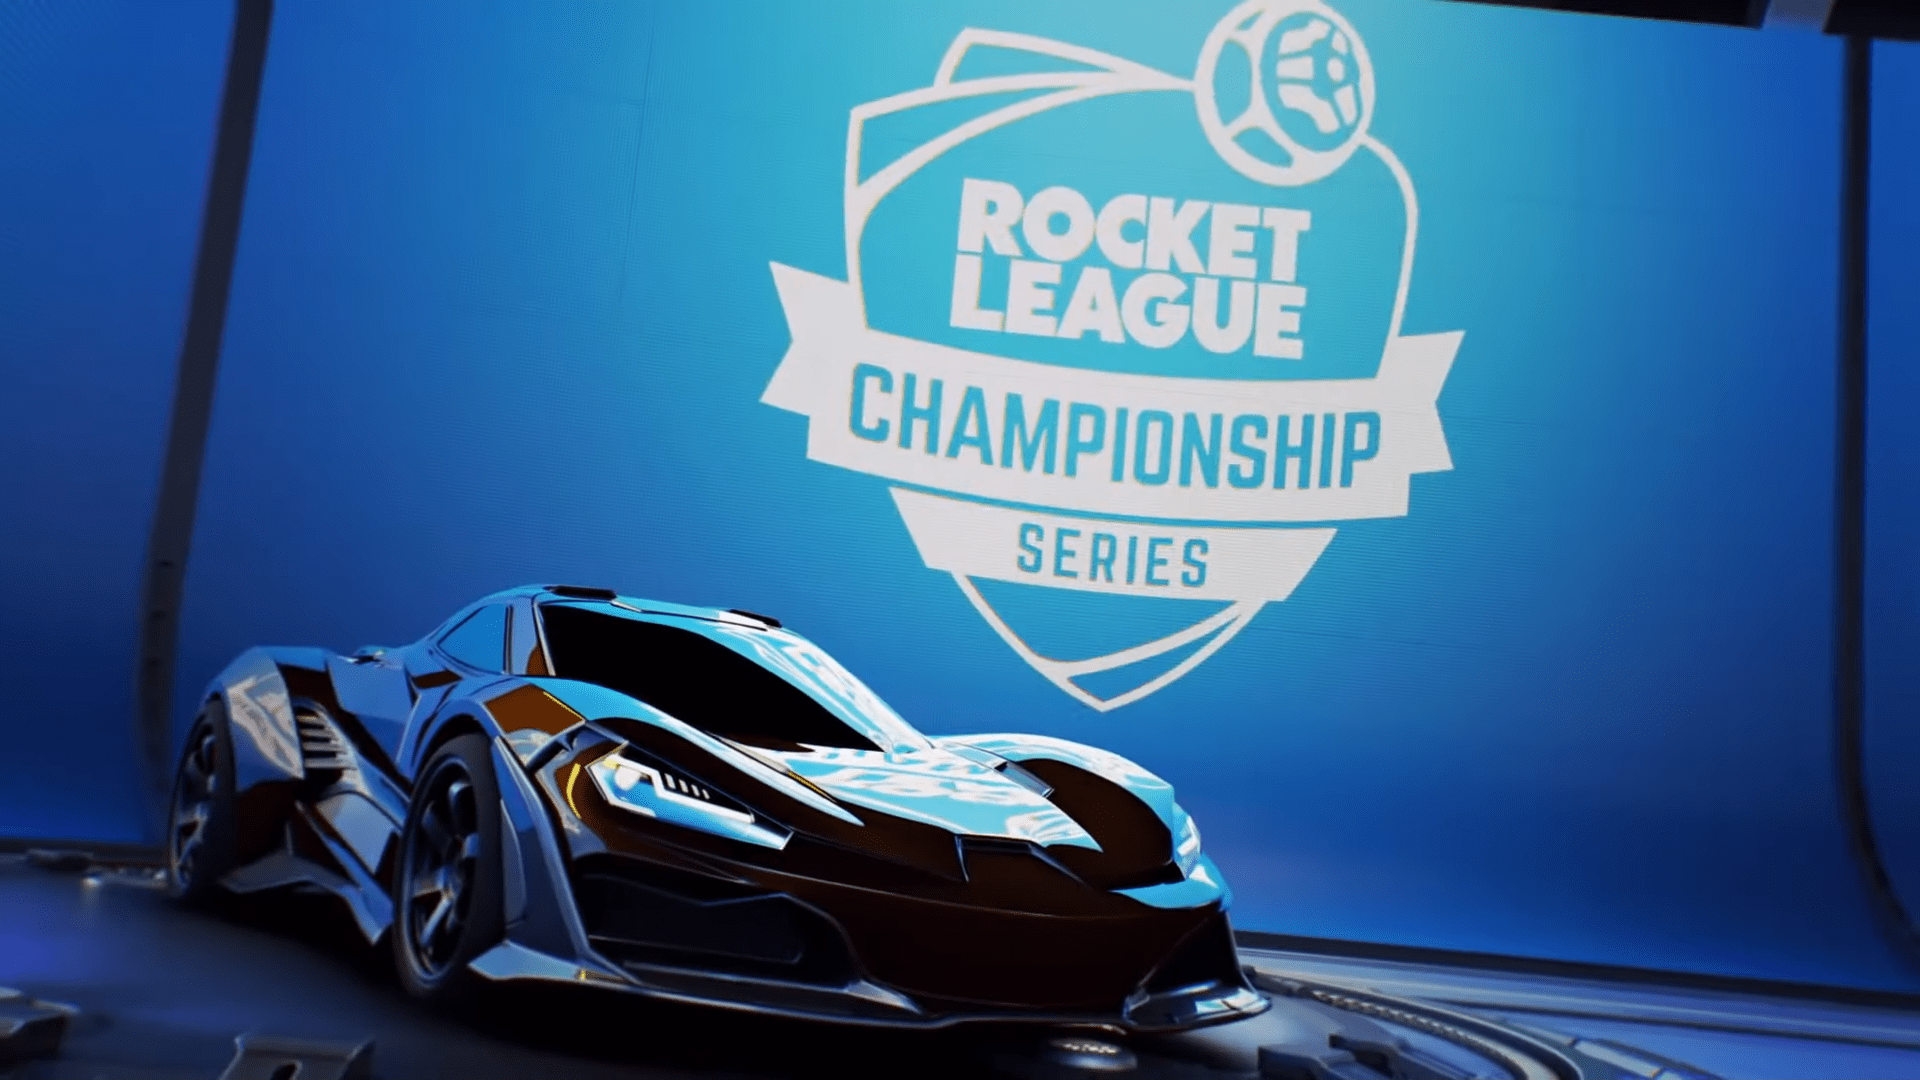 Rocket League Has A Content Update Incoming On February 4th For RLCS Season 9